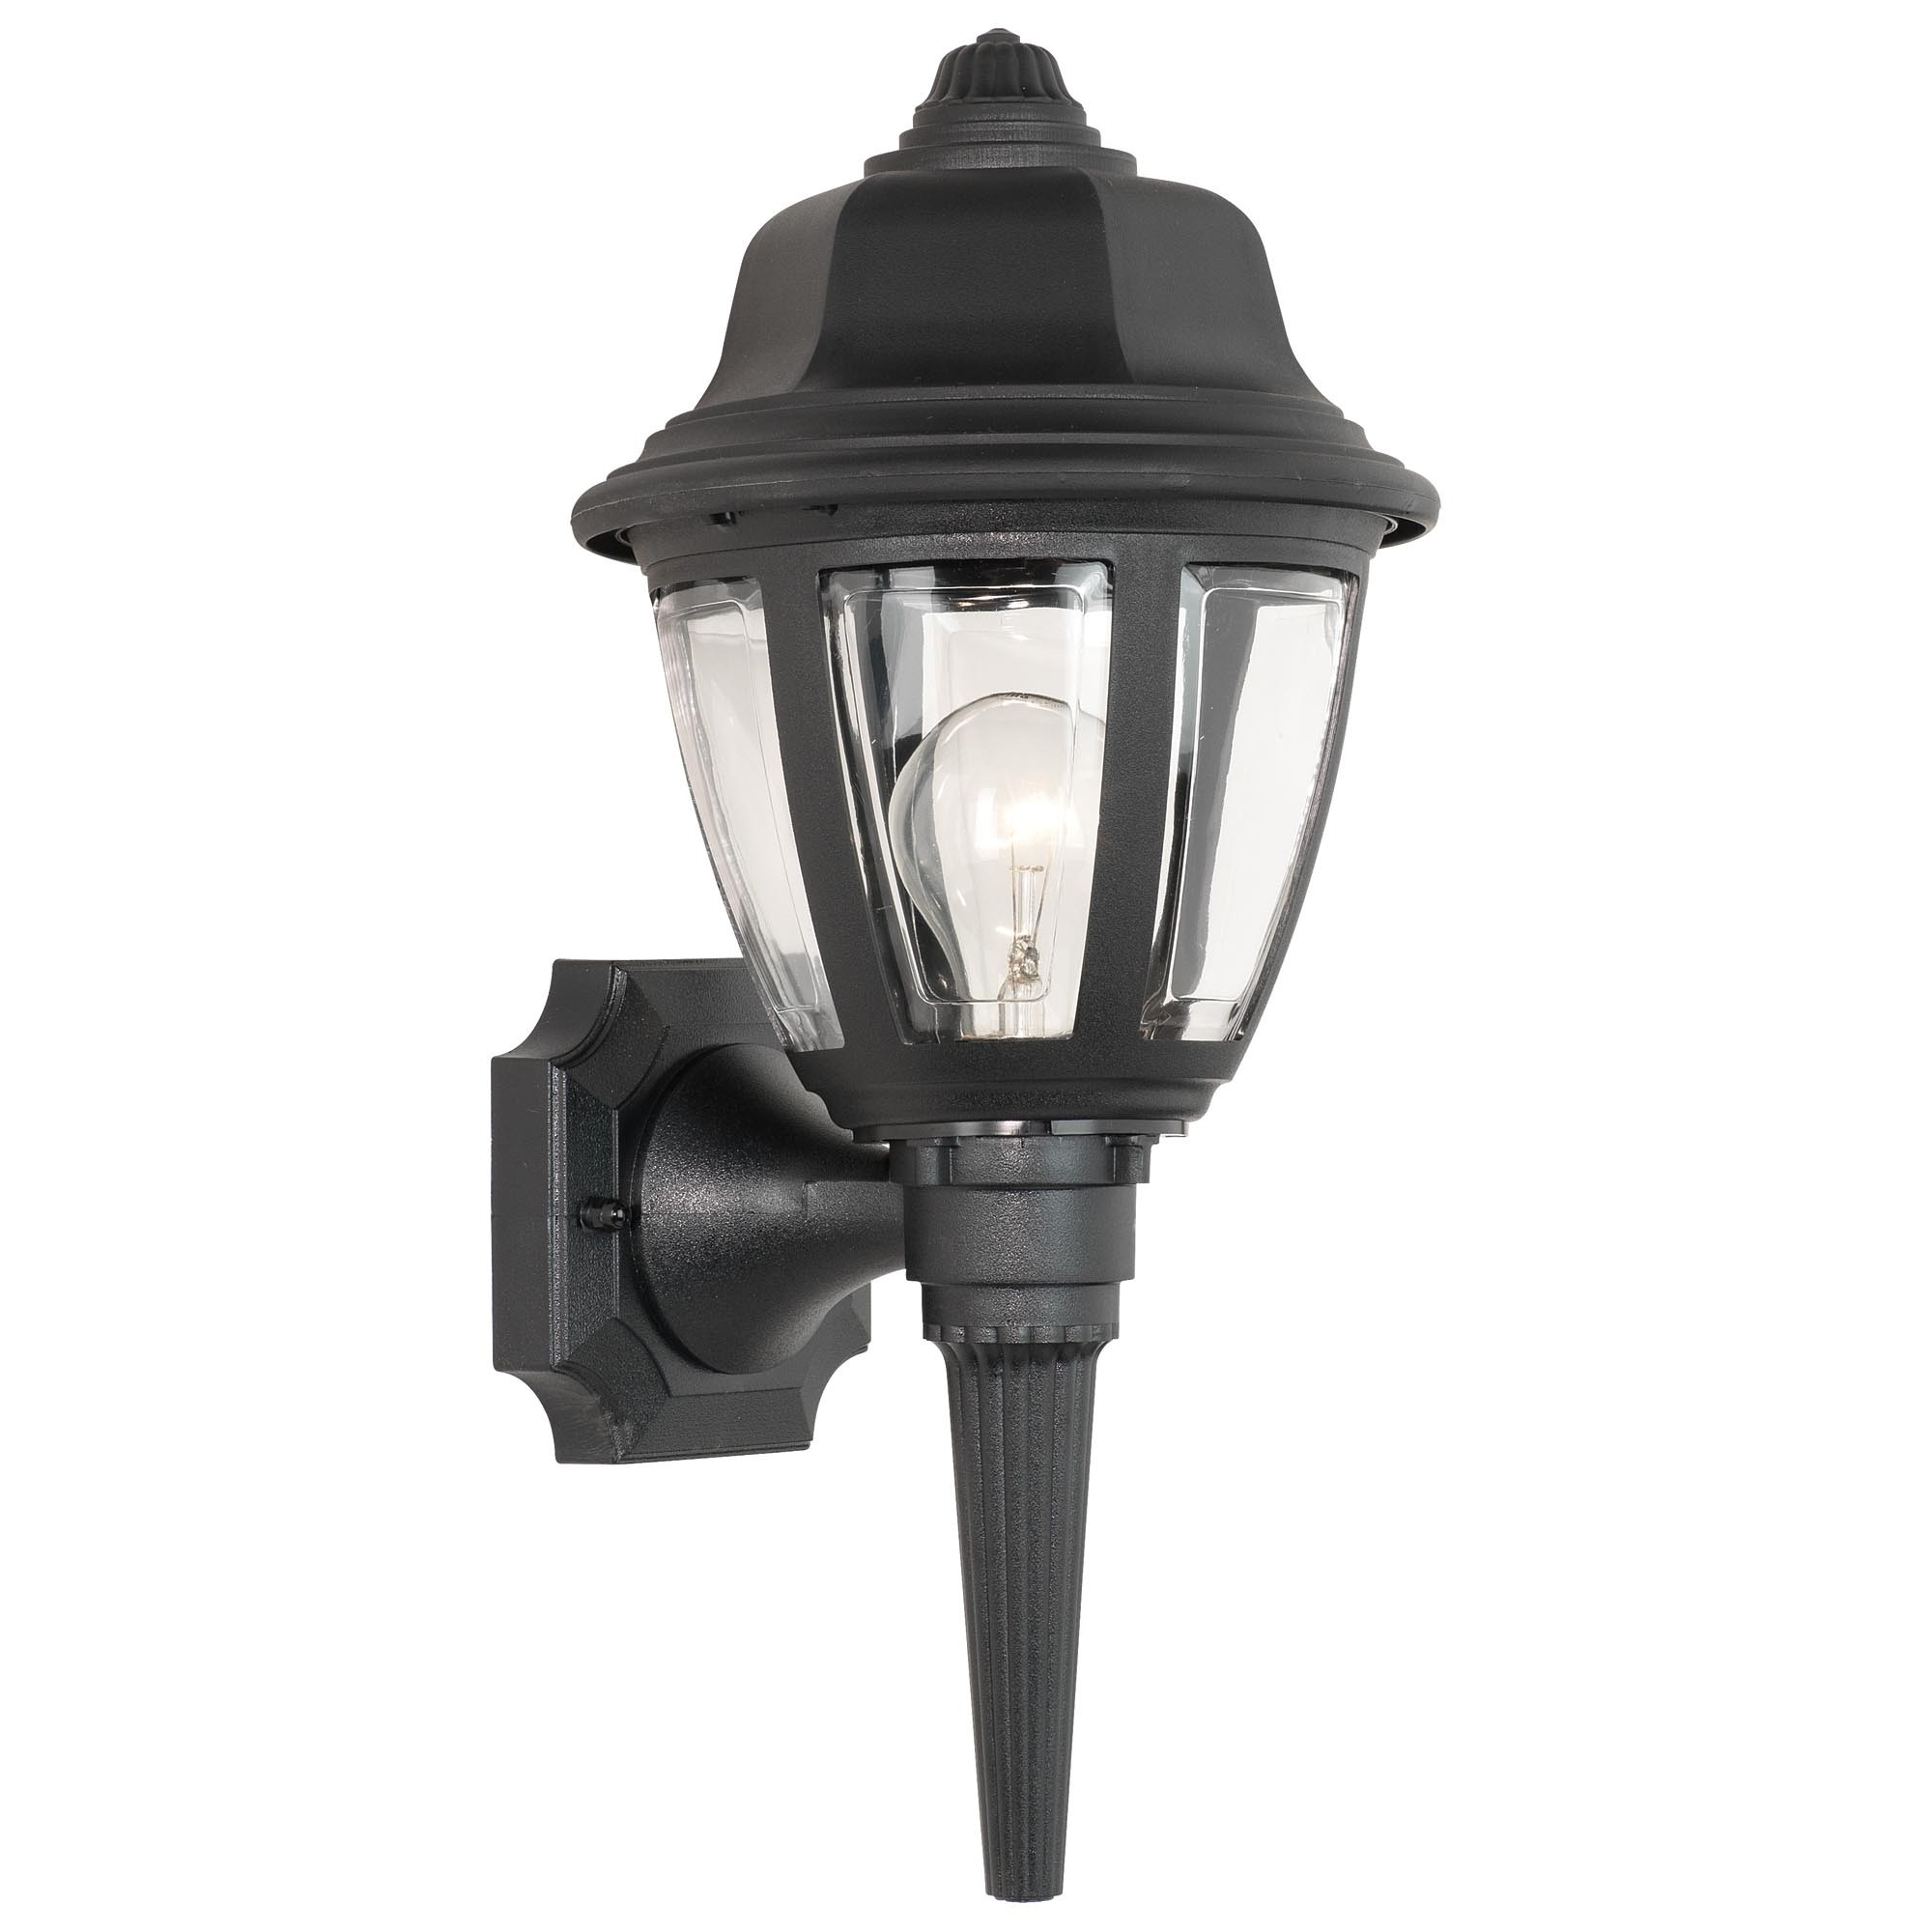 Plastic Lanterns Outdoor Lights Light Splendid Black Wall Lantern with regard to Outdoor Plastic Lanterns (Image 15 of 20)